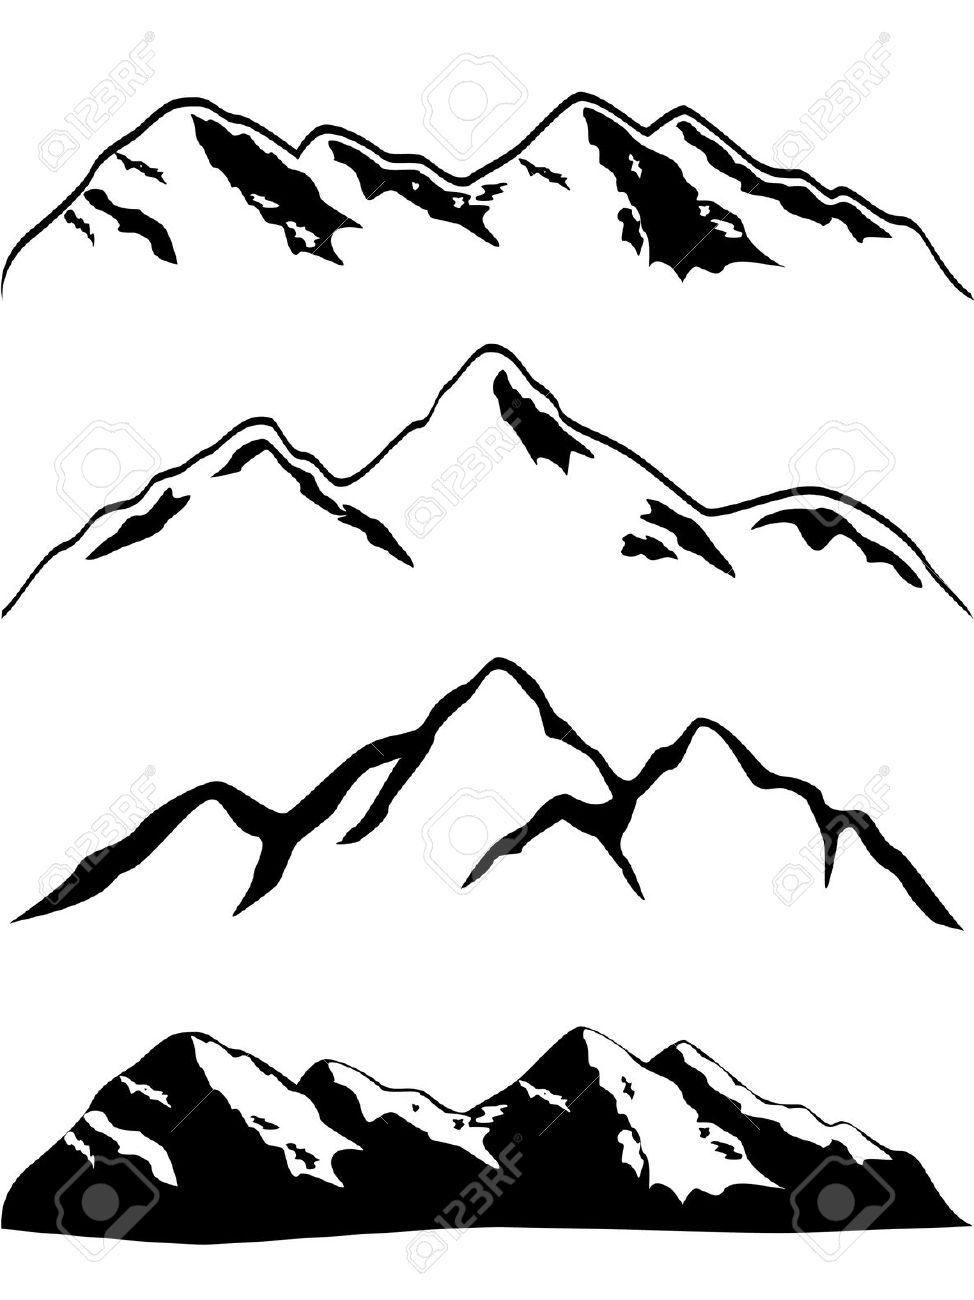 Appalachian Mountains clipart #10, Download drawings